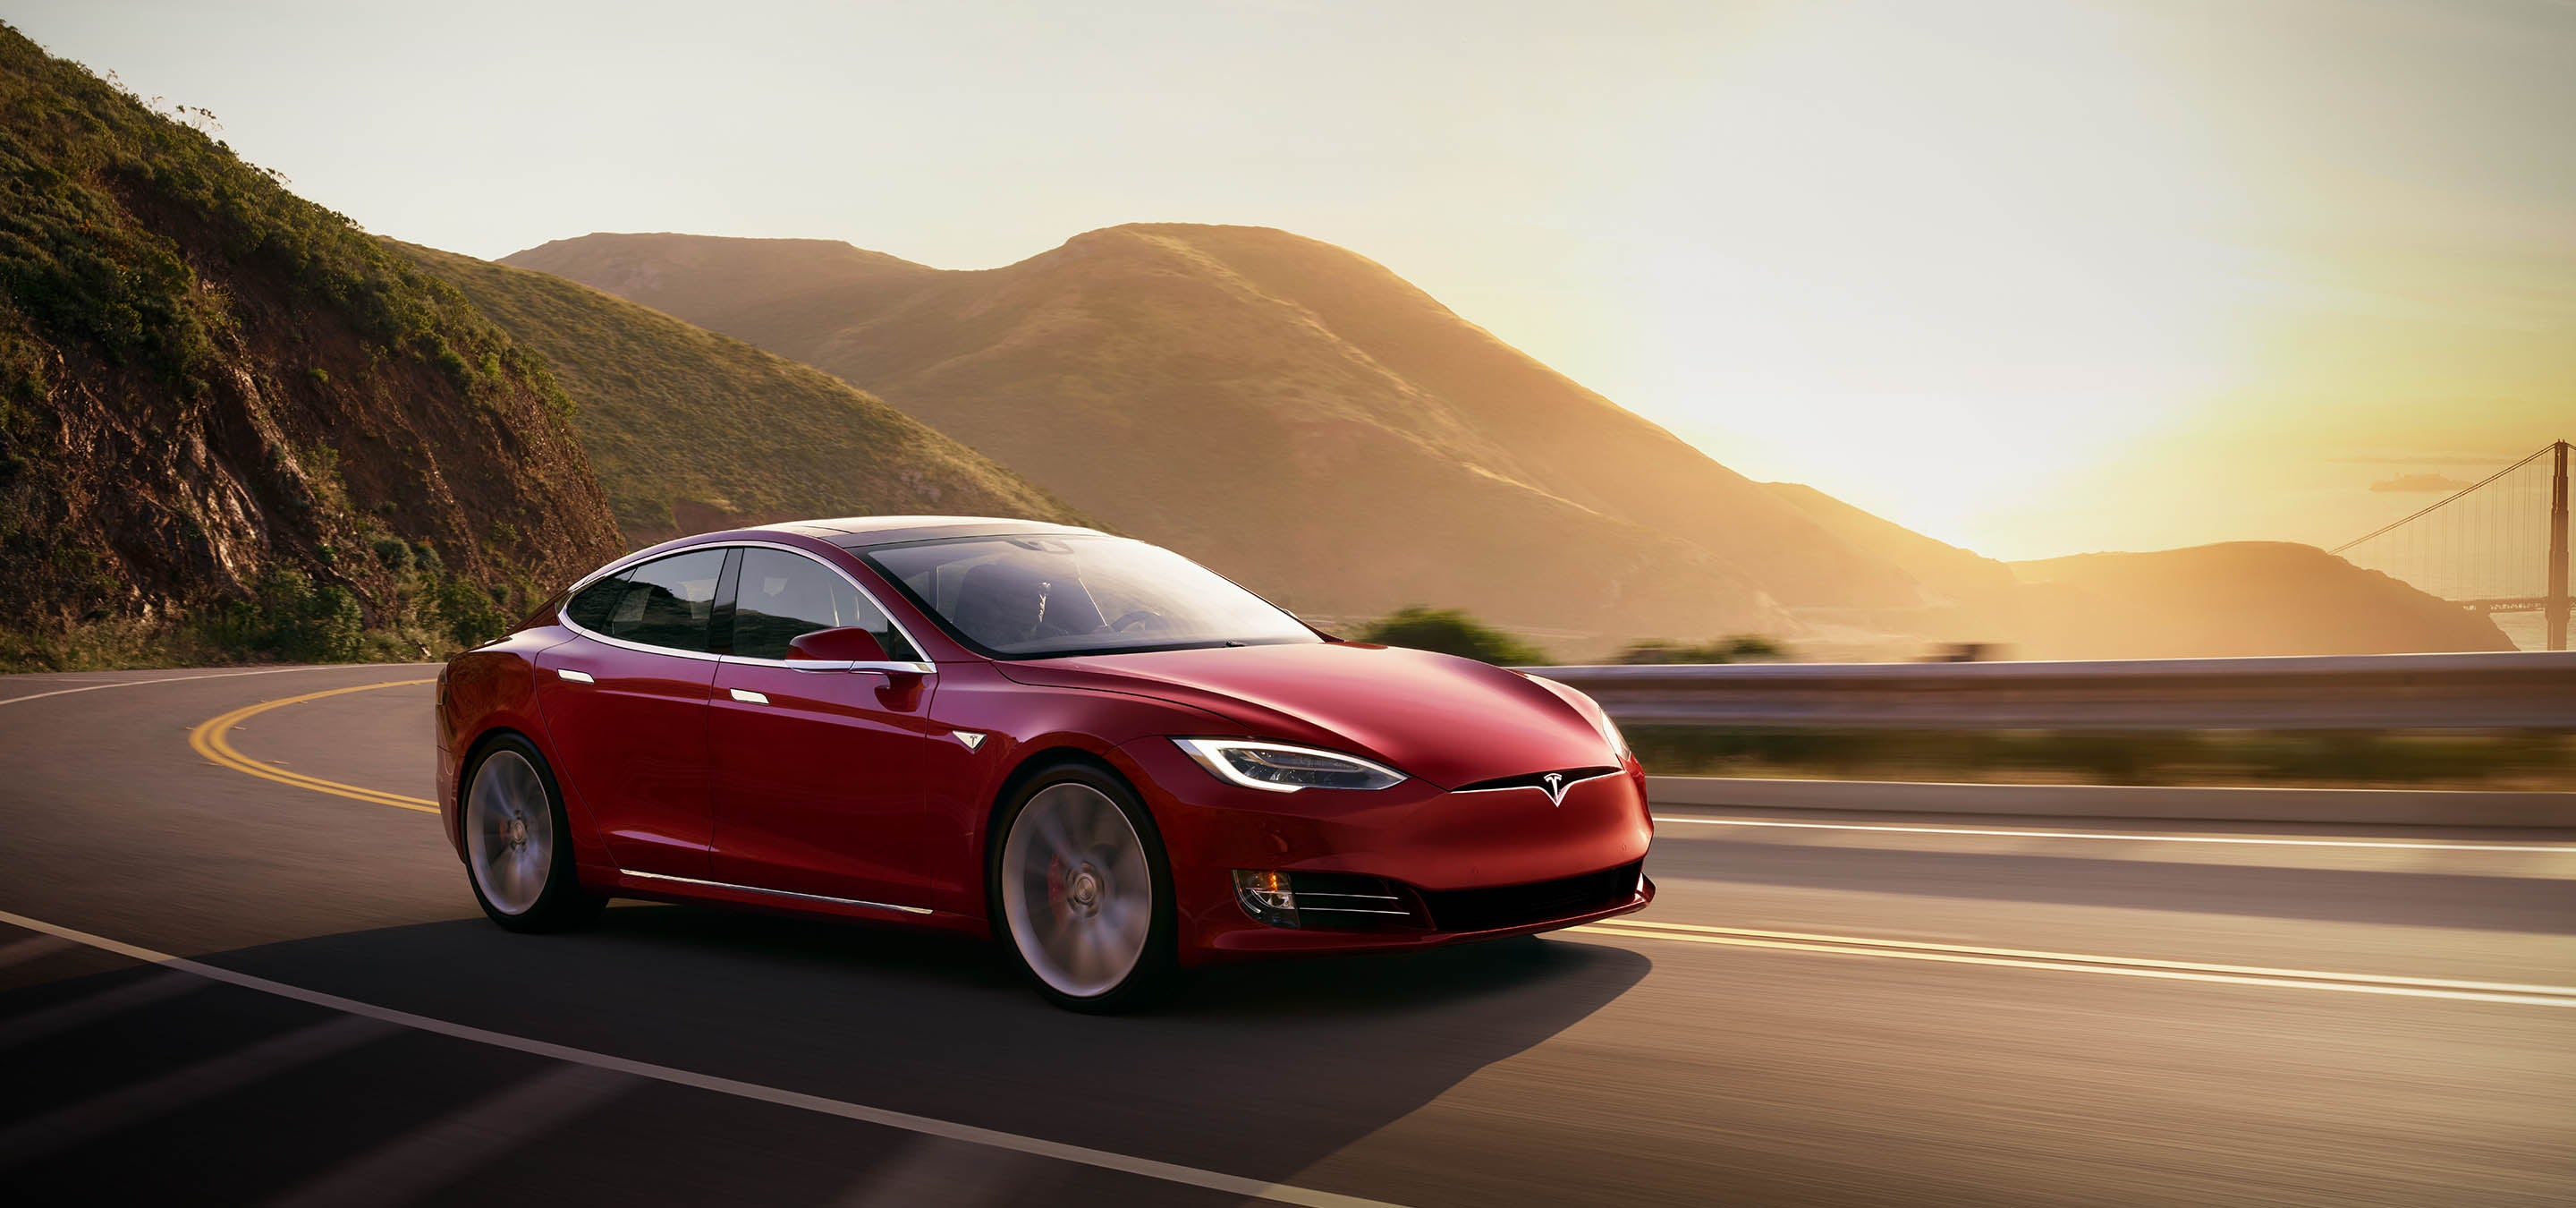 Government Launches Investigation Into 115,000 Tesla Vehicles Over Suspension Issue